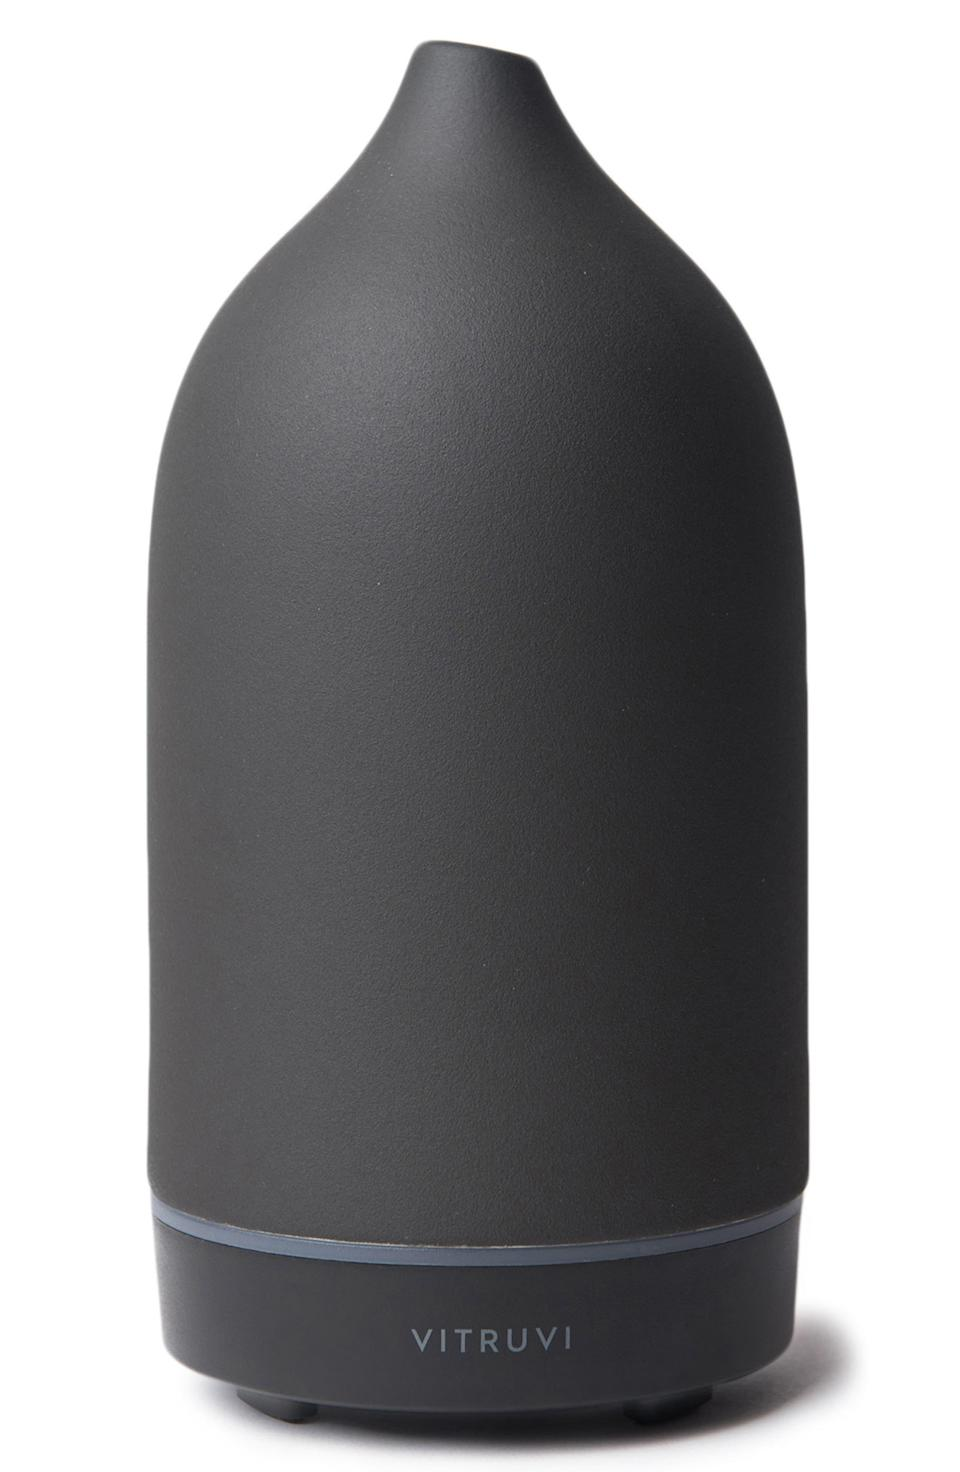 """<h3>Vitruvi Stone Diffuser </h3><br><br>There are so many diffusers out there, but this one has safety features, and is produced cruelty free. As a bonus, it's super cute from an interior design standpoint. Although there isn't enough conclusive research, Mayo Clinic notes that <a href=""""https://www.refinery29.com/en-us/aromatherapy-products-for-sleep"""" rel=""""nofollow noopener"""" target=""""_blank"""" data-ylk=""""slk:aromatherapy"""" class=""""link rapid-noclick-resp"""">aromatherapy</a> may have positive benefits such as <a href=""""https://www.mayoclinic.org/healthy-lifestyle/consumer-health/expert-answers/aromatherapy/faq-20058566"""" rel=""""nofollow noopener"""" target=""""_blank"""" data-ylk=""""slk:relief from anxiety"""" class=""""link rapid-noclick-resp"""">relief from anxiety</a> and improved sleep.<br><br>I use mine with a <a href=""""https://vitruvi.com/products/dusk-essential-oil-blend?variant=5015421648924&gclid=EAIaIQobChMI88LumYiQ5AIVCiaGCh0i7wdDEAQYASABEgJ97PD_BwE"""" rel=""""nofollow noopener"""" target=""""_blank"""" data-ylk=""""slk:Vitruvi essential oil blend called Dusk"""" class=""""link rapid-noclick-resp"""">Vitruvi essential oil blend called Dusk</a>, which is frankincense, eucalyptus, ho wood, and lavender. I keep it in my room, and I turn it on and close my door after particularly long days at work. It makes me feel as reborn as a caterpillar in a tiny, heavenly smelling cocoon of peace.<br><br><strong>Vitruvi</strong> Porcelain Essential Oil Diffuser, $, available at <a href=""""https://go.skimresources.com/?id=30283X879131&url=https%3A%2F%2Fshop.nordstrom.com%2Fs%2Fvitruvi-porcelain-essential-oil-diffuser%2F4632548"""" rel=""""nofollow noopener"""" target=""""_blank"""" data-ylk=""""slk:Nordstrom"""" class=""""link rapid-noclick-resp"""">Nordstrom</a>"""